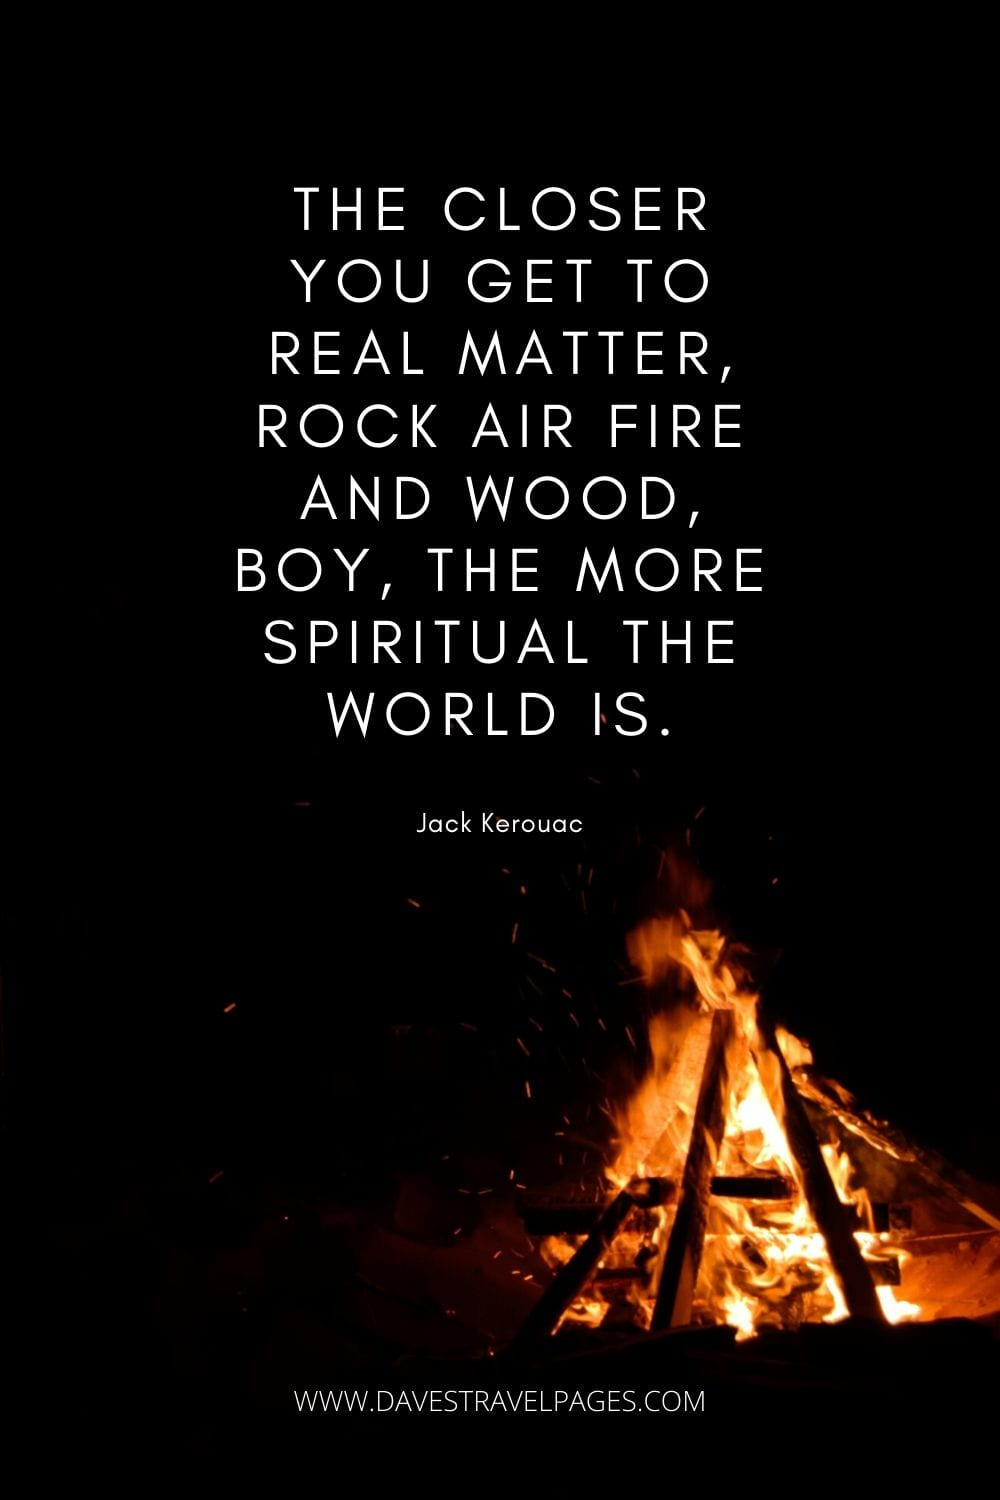 """The closer you get to real matter, rock air fire and wood, boy, the more spiritual the world is."" - The Dharma Bums"